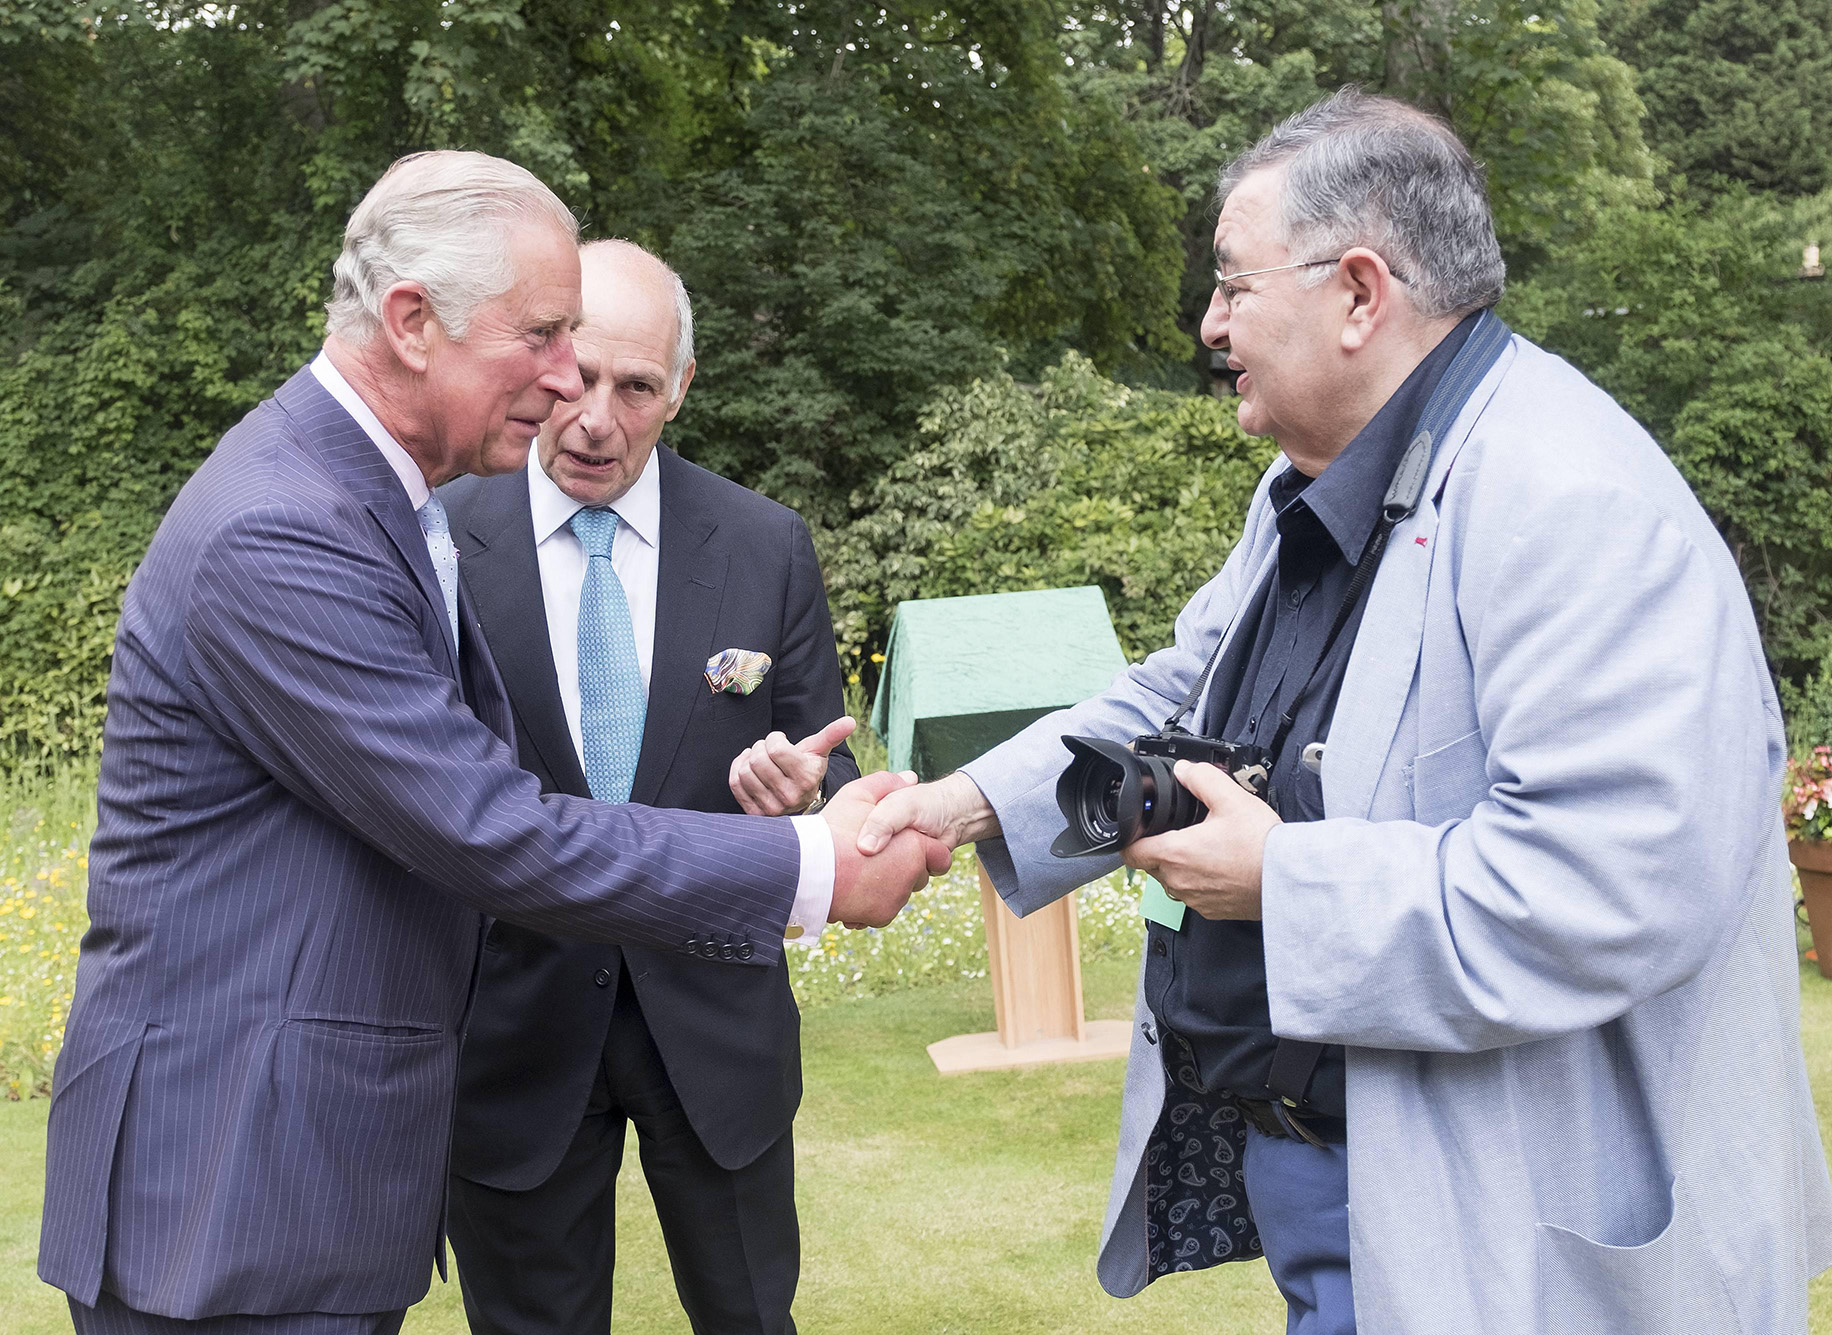 BRITAIN London 13/07/2017HRH The Prince of Wales with the Shire Horses of Operation Centaur at the launch of the Royal Parks Charity Pictured: Prince Charles is introduced to Daily Express photographer Paul Stewart who wrote the book The Last Herd about the Royal Parks Shire horses©Vivien Stewart 2016@@PS_HRH1029.JPG